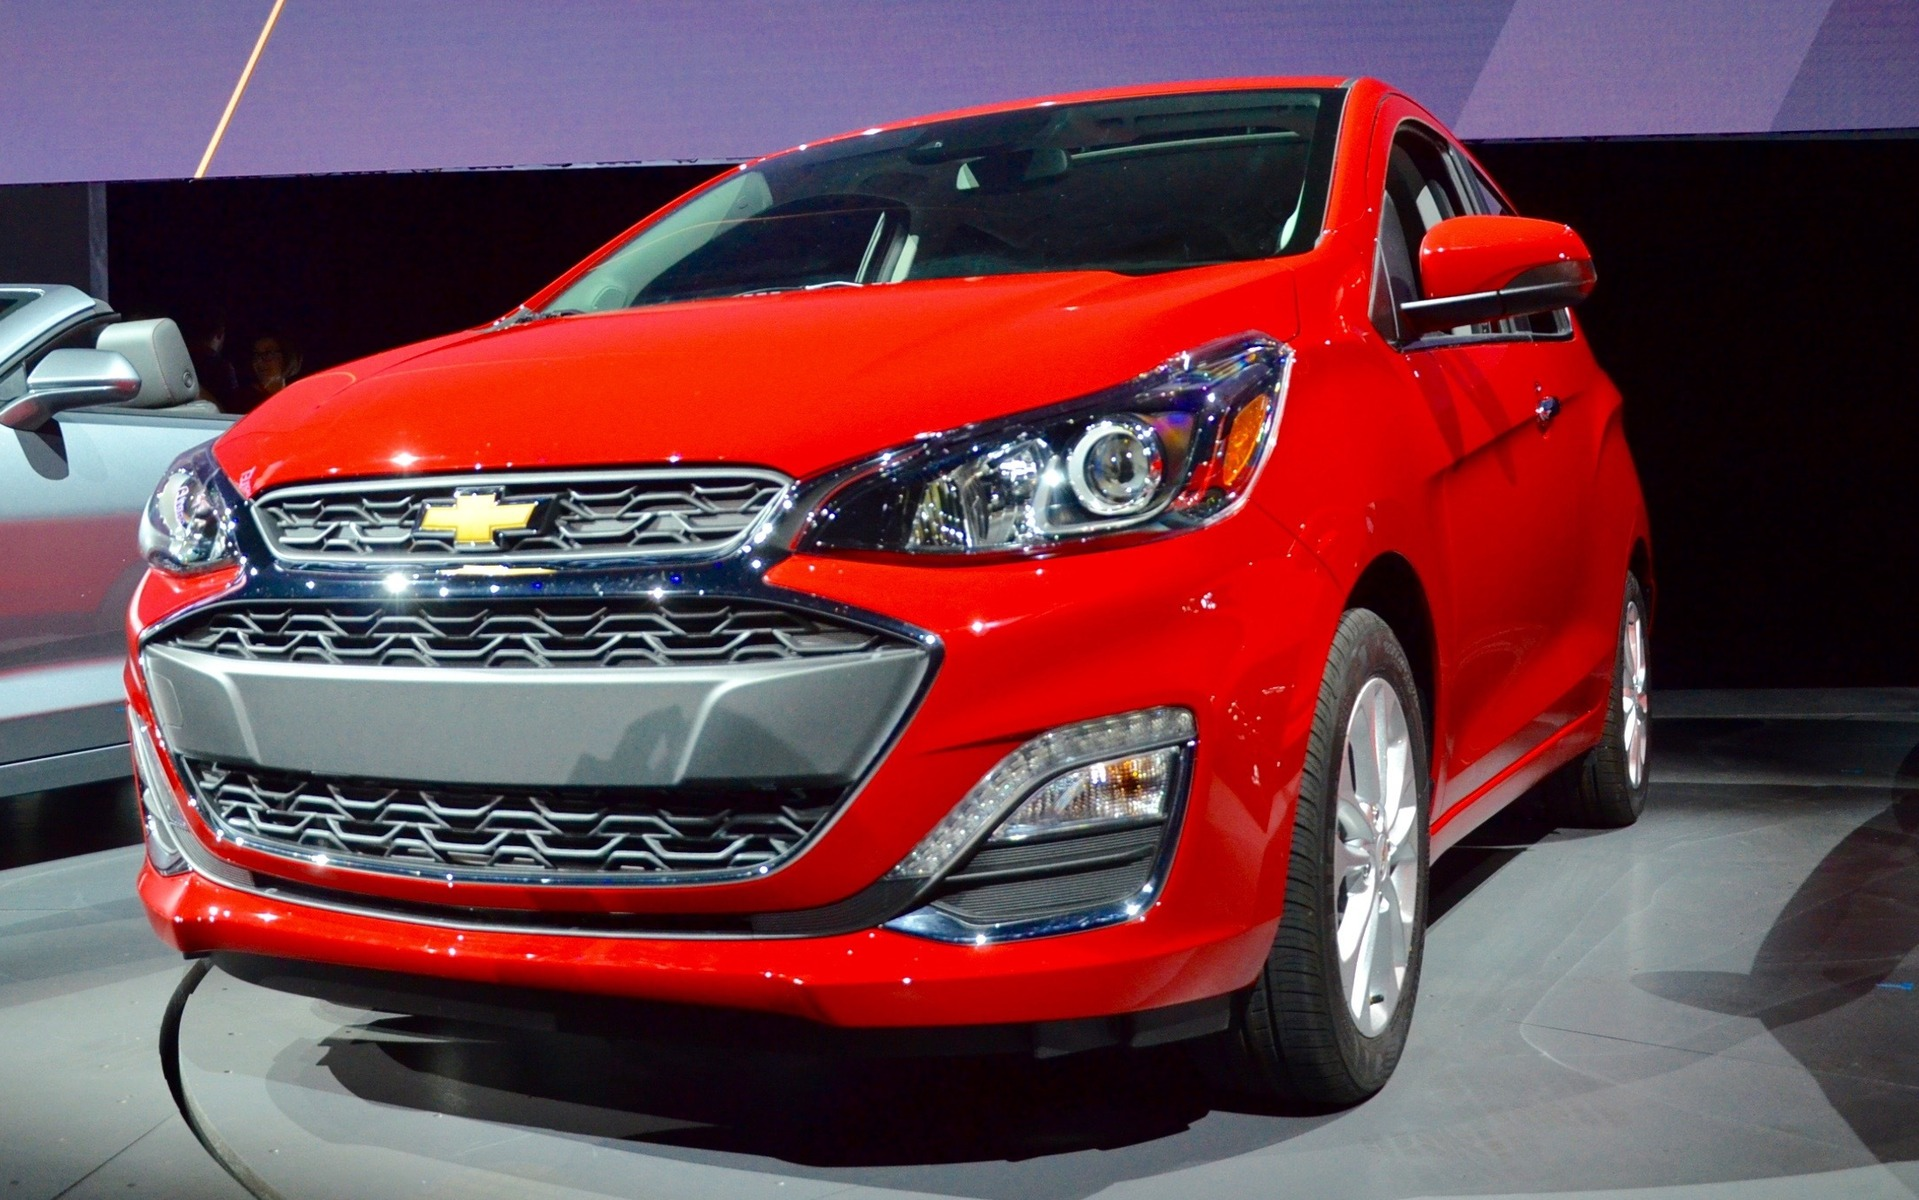 2019 Chevrolet Spark: New Nose, New Colours - 3/3